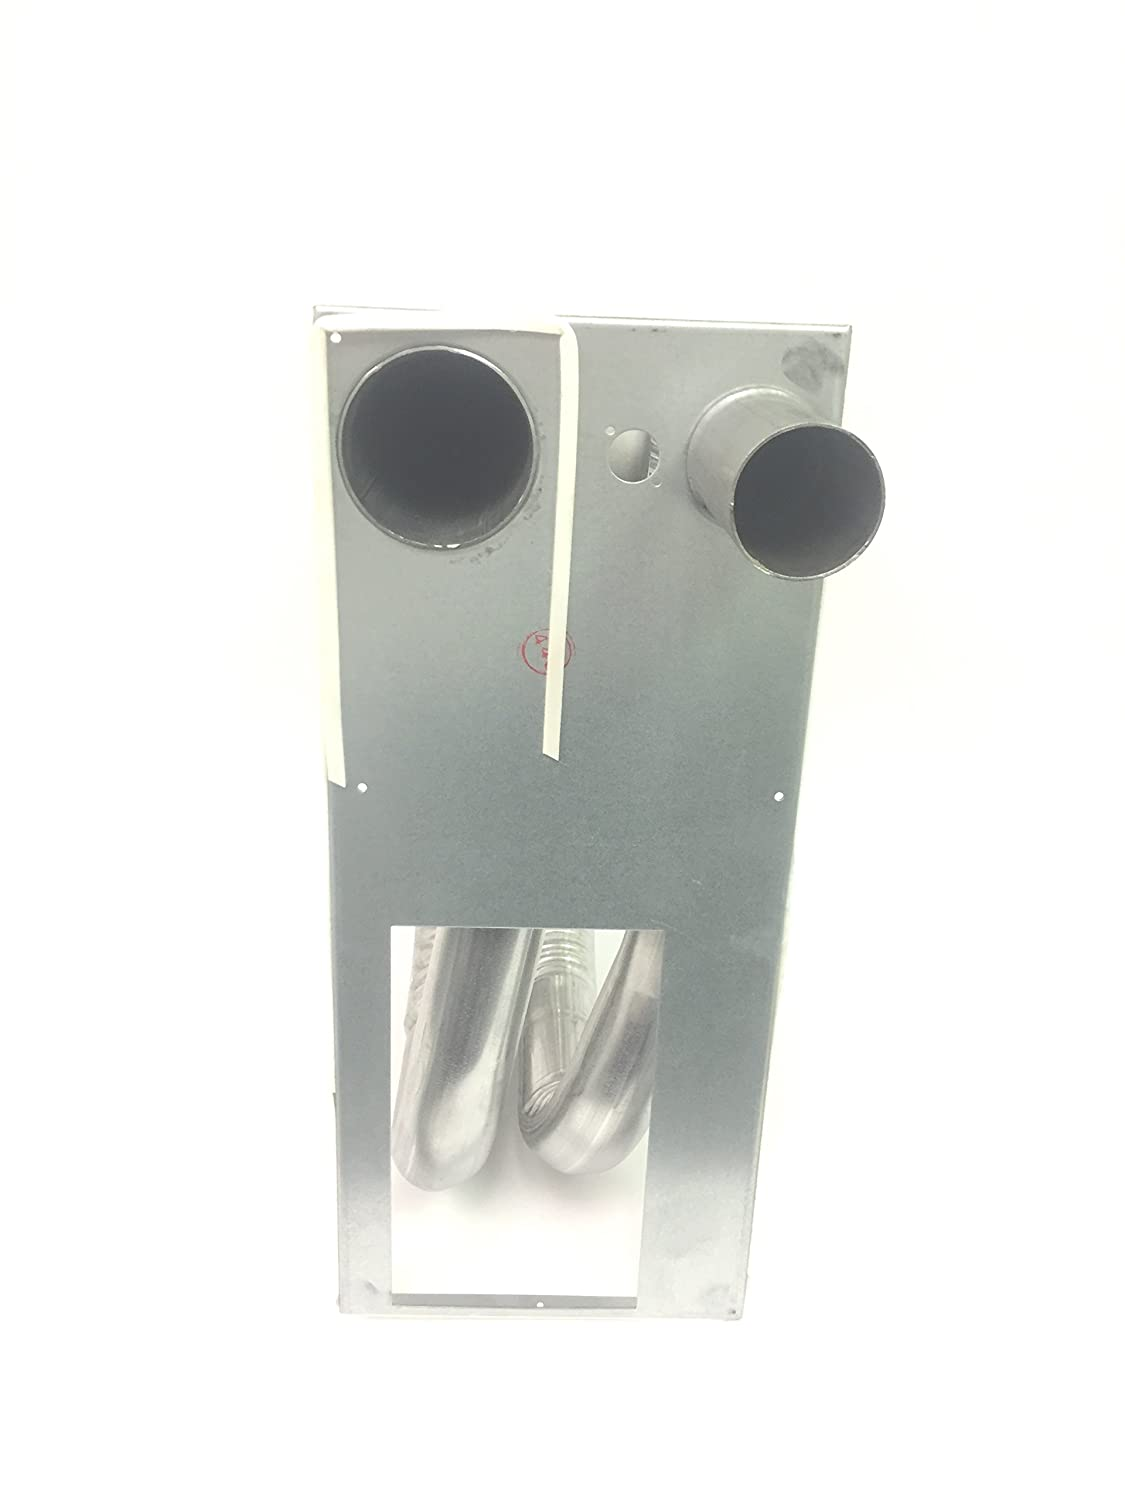 Atwood 35710 Heat Exchanger for AFMD Series Furnace